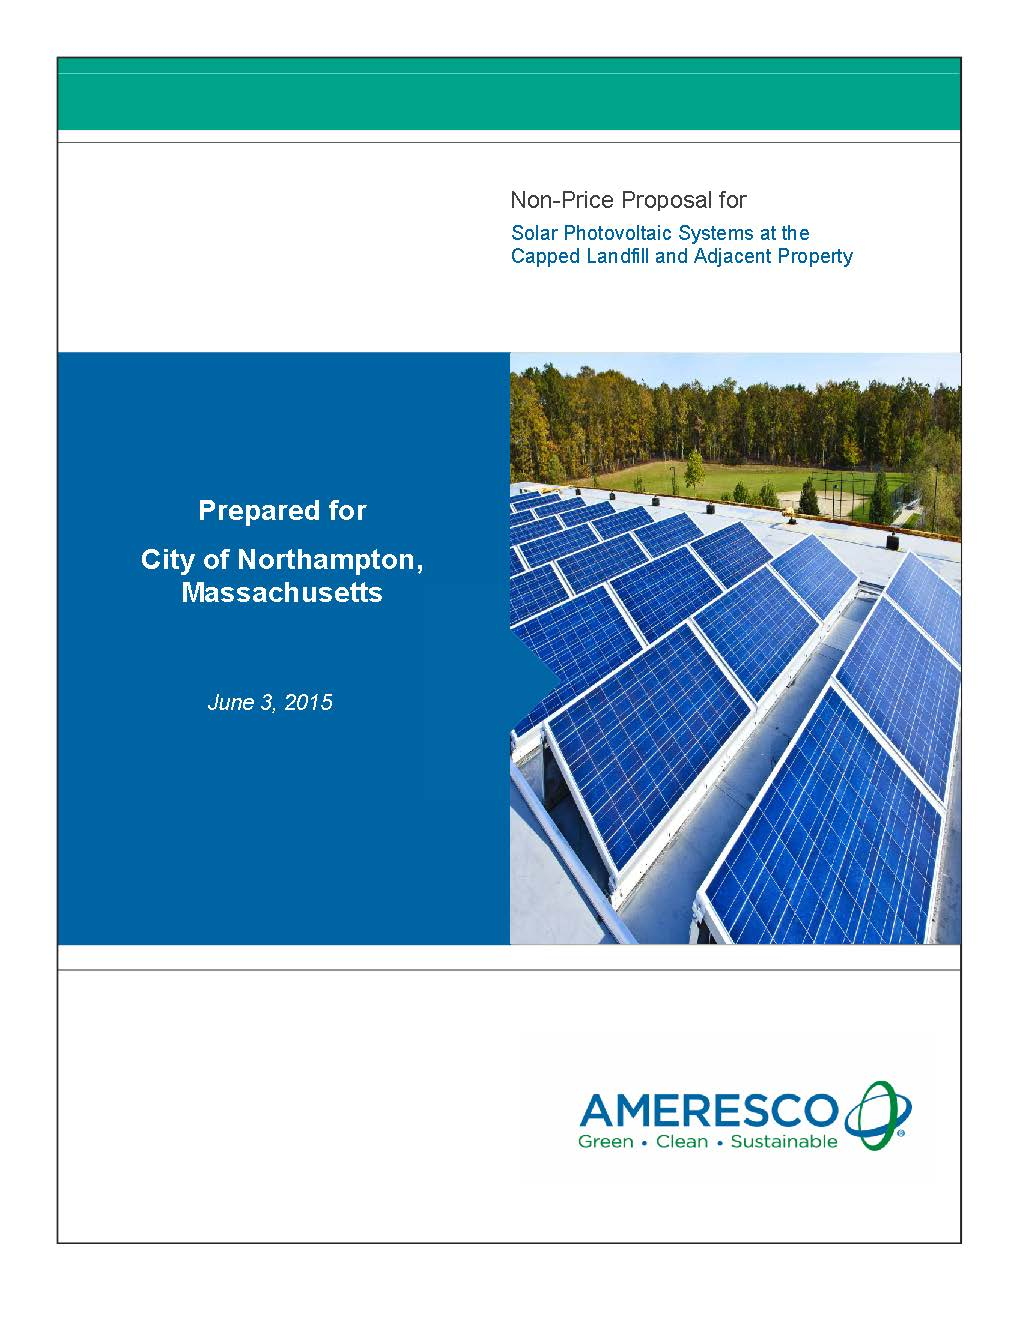 Pages from Ameresco Response to City of Northampton Solar RFP